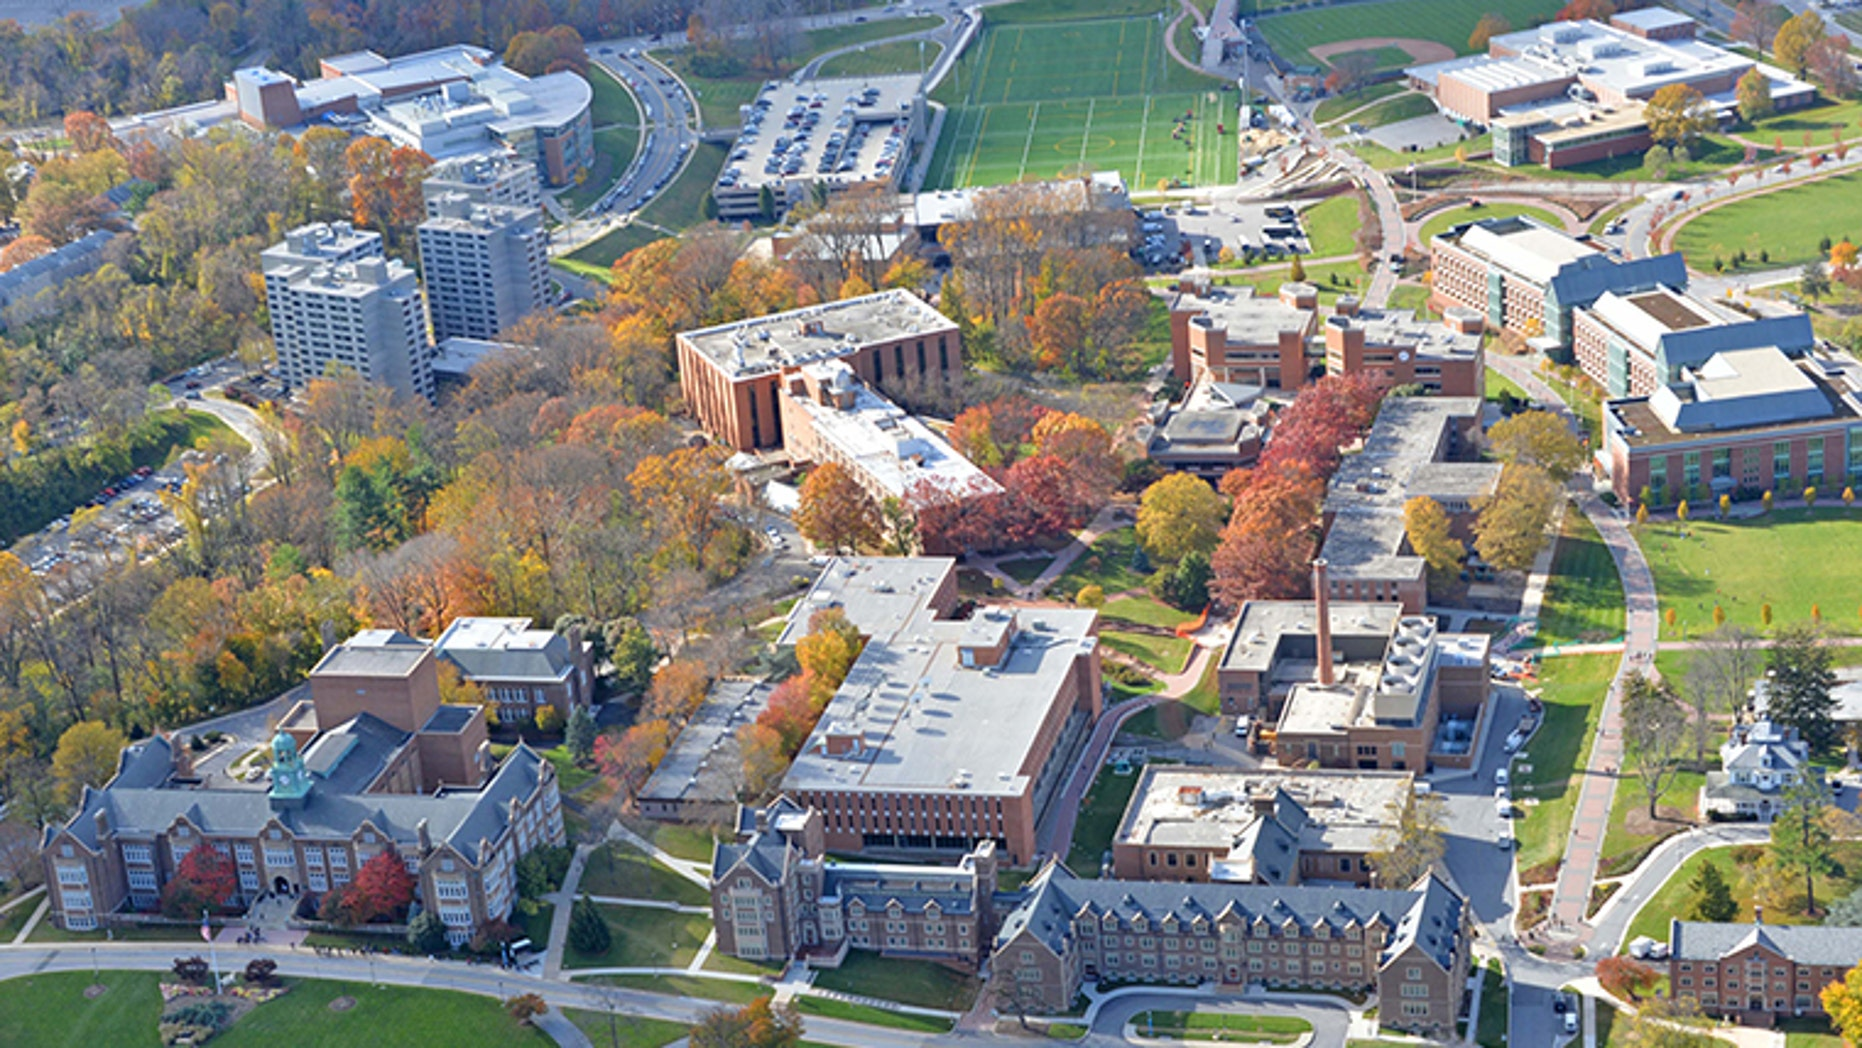 A perspective of Townson University in Maryland.